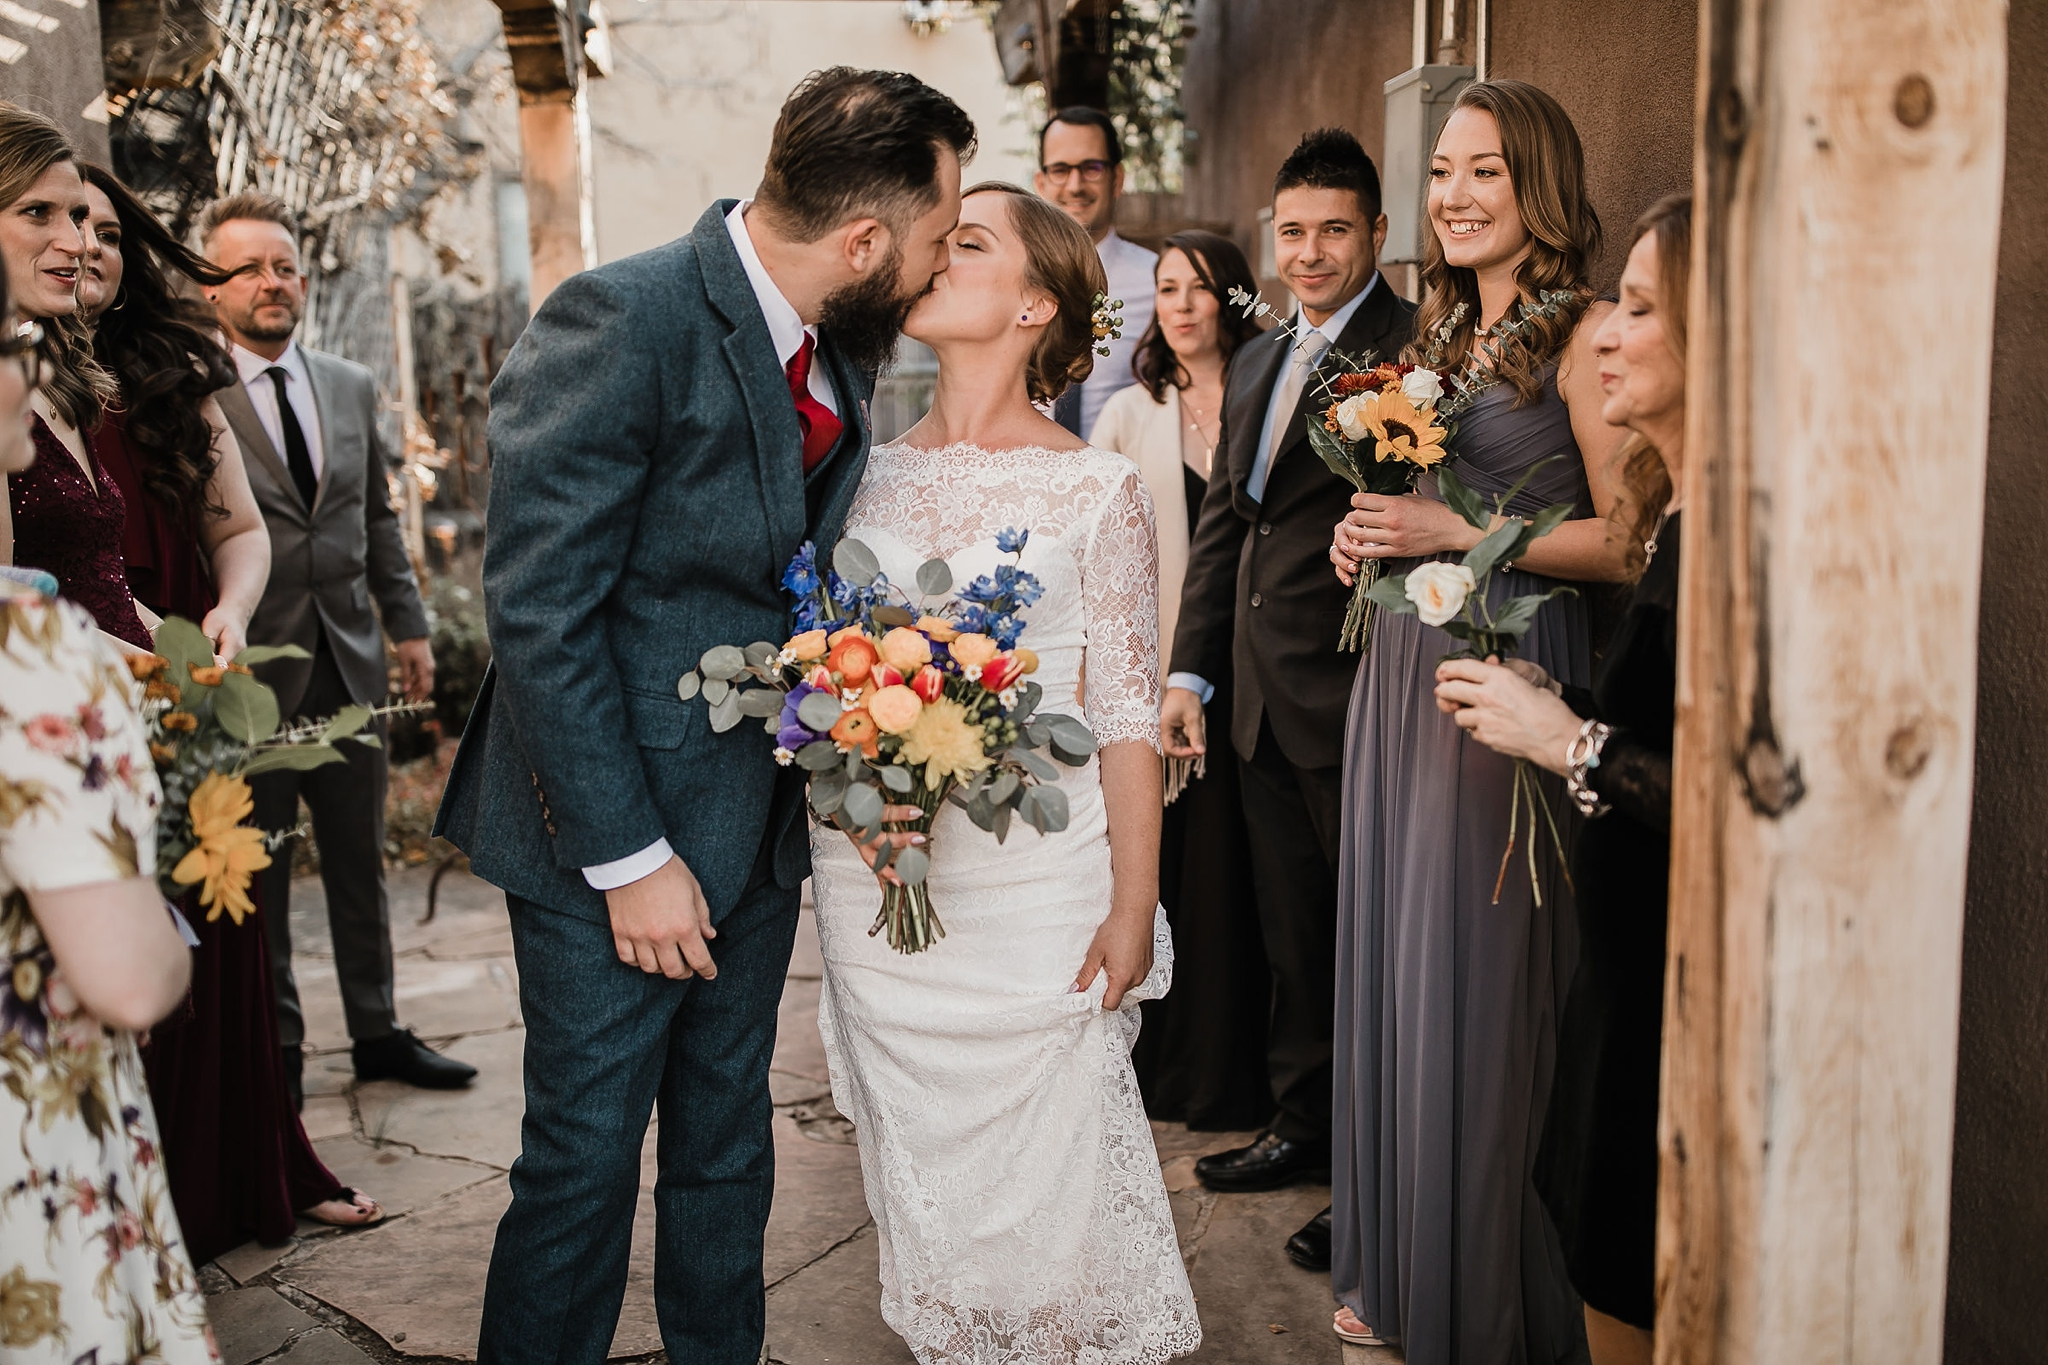 Alicia+lucia+photography+-+albuquerque+wedding+photographer+-+santa+fe+wedding+photography+-+new+mexico+wedding+photographer+-+new+mexico+wedding+-+wedding+venues+-+new+mexico+wedding+venues+-+colorado+wedding+venues_0004.jpg